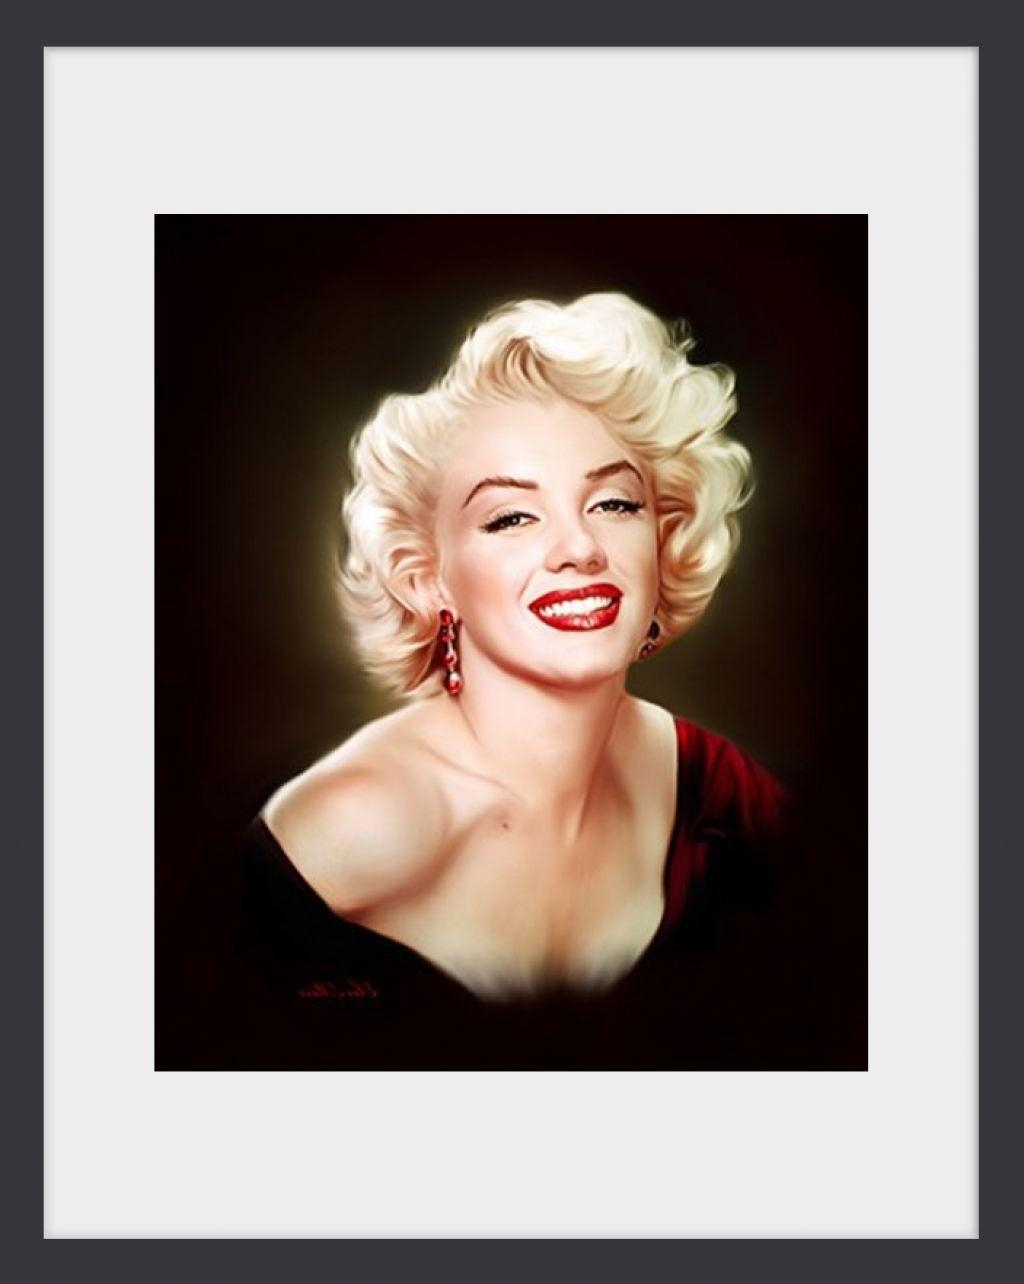 Marilyn Monroe Framed Pictures Walmart ~ Idoorframe Within Marilyn Monroe Framed Wall Art (View 3 of 20)